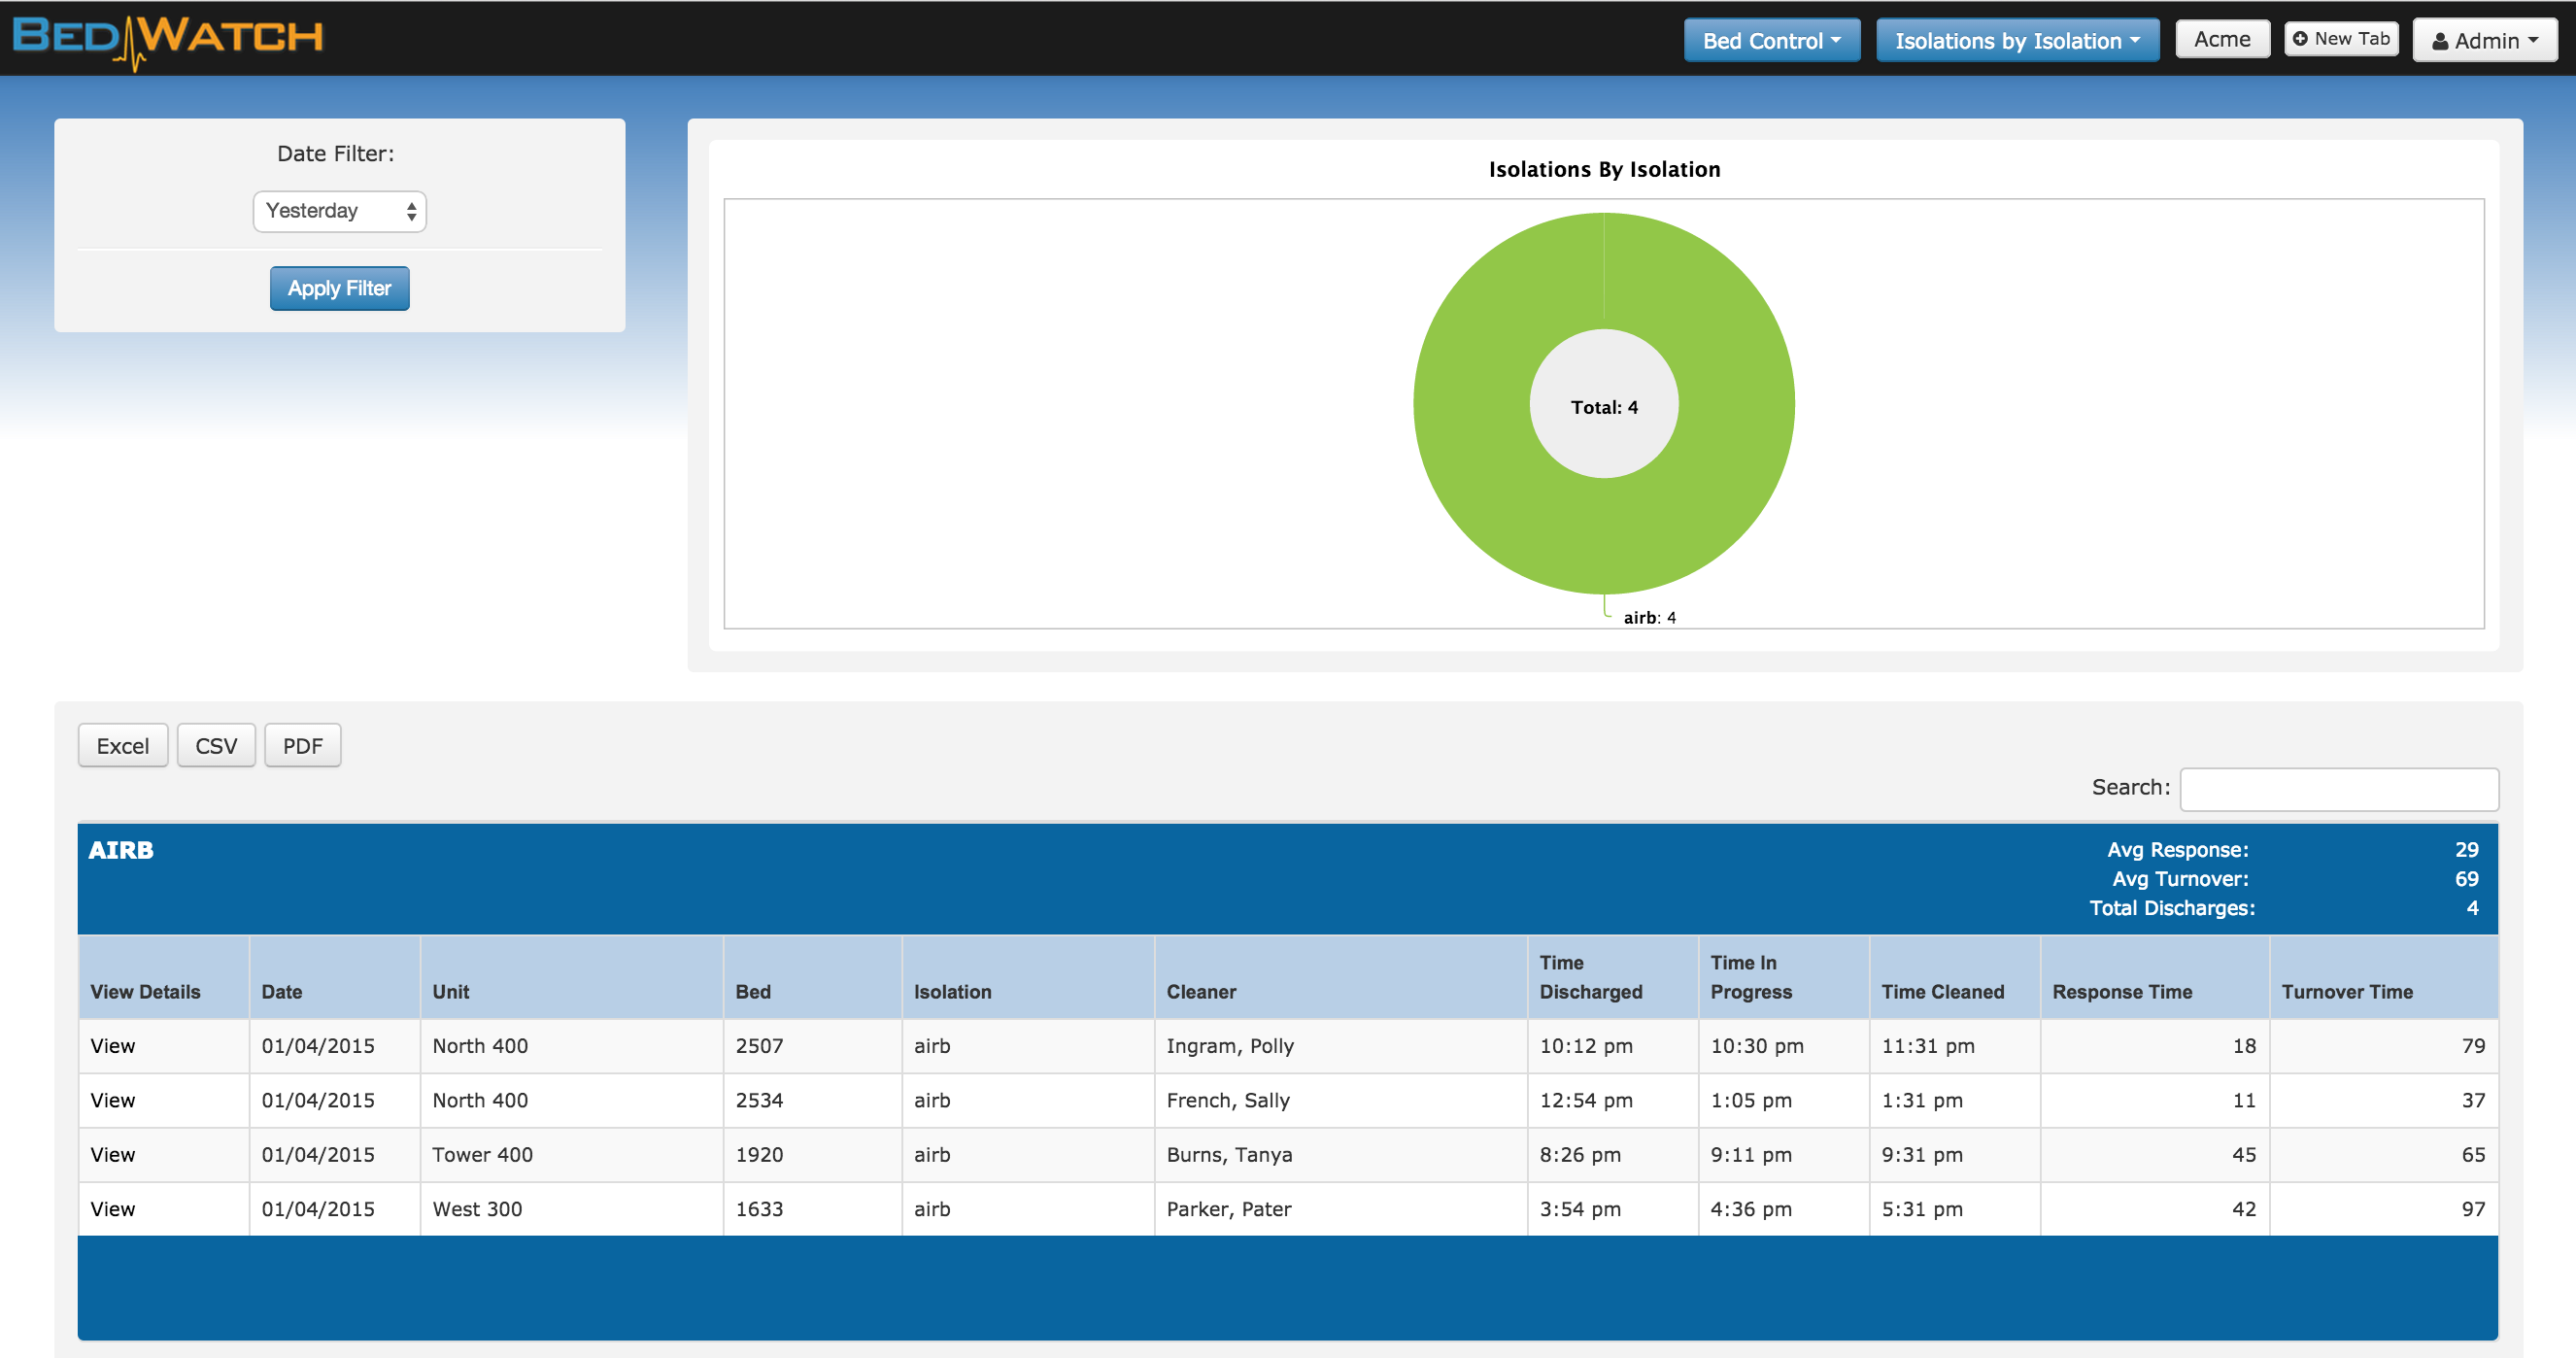 BedWatch users can run reports on Isolation cases by date, unit, or isolation type.